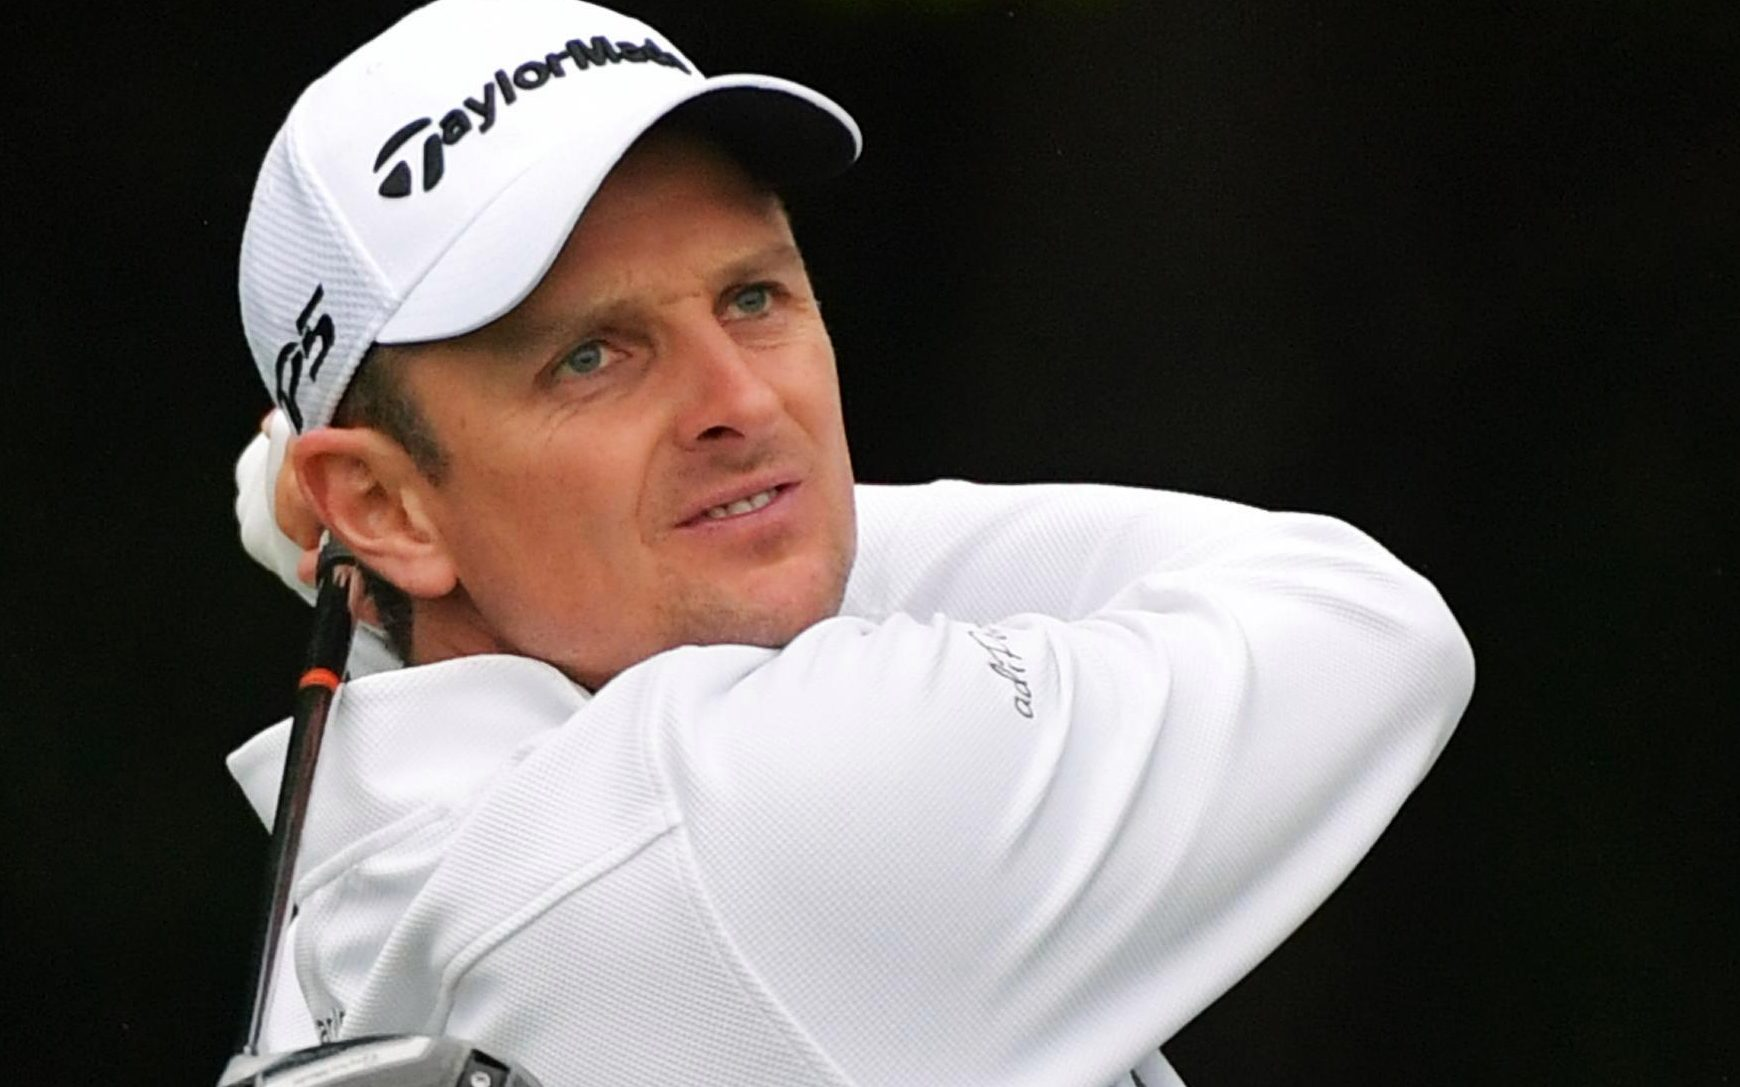 Justin Rose led overnight before getting losing out in a play-off